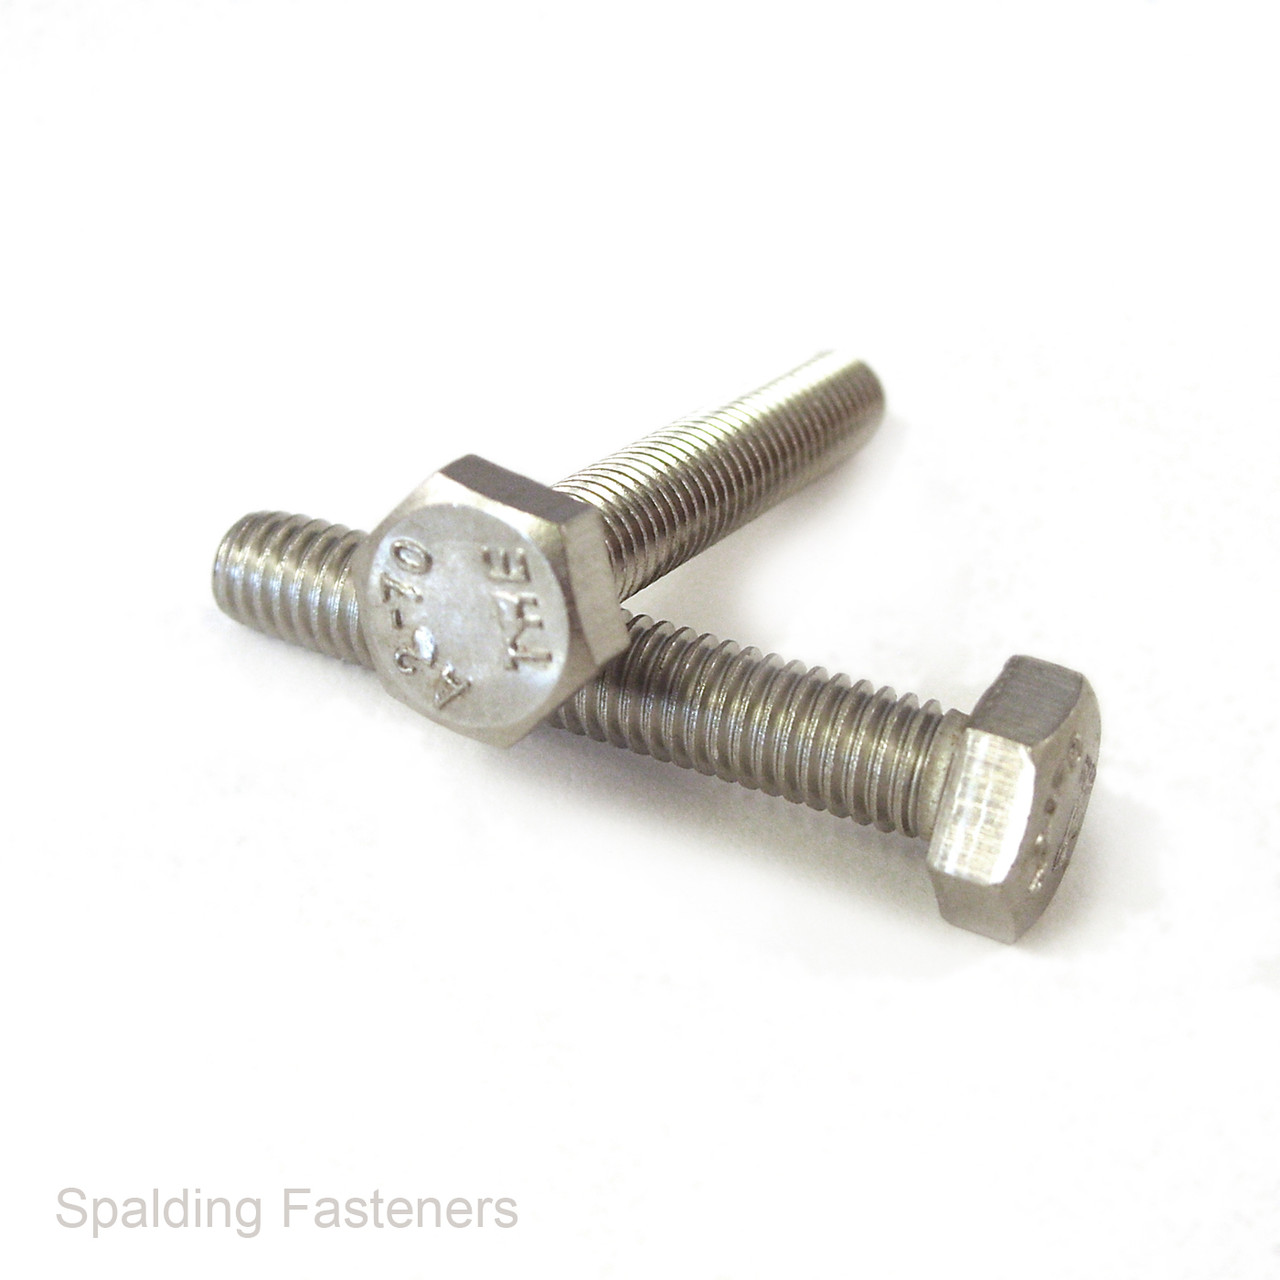 M6 x 16mm HEXAGON HEAD FULLY THREADED SET SCREWS ZINC PLATED BOLTS DIN 933